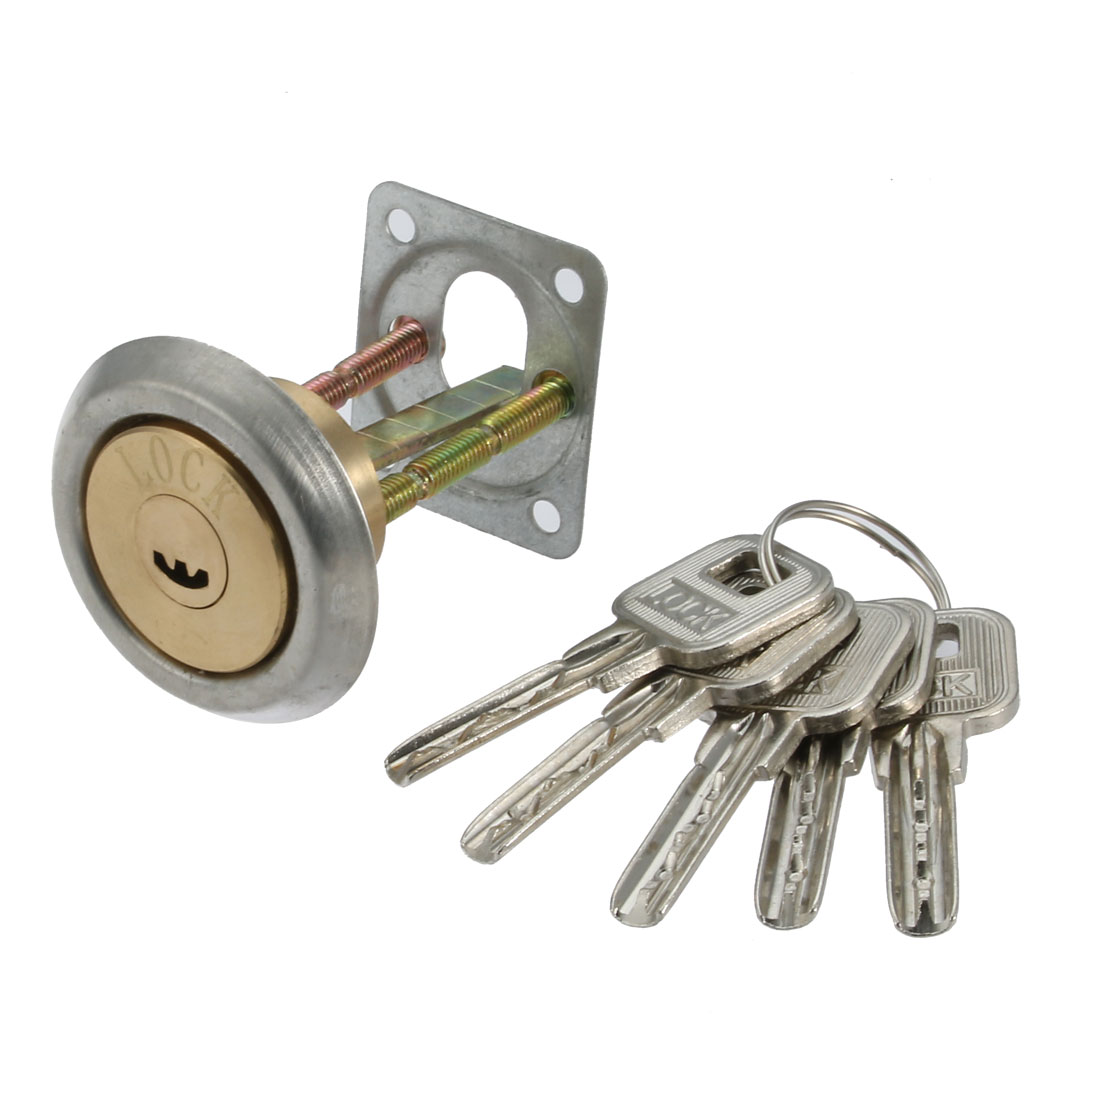 Replacement Rim Cylinder Lock 35mm Long Shaft w Keys